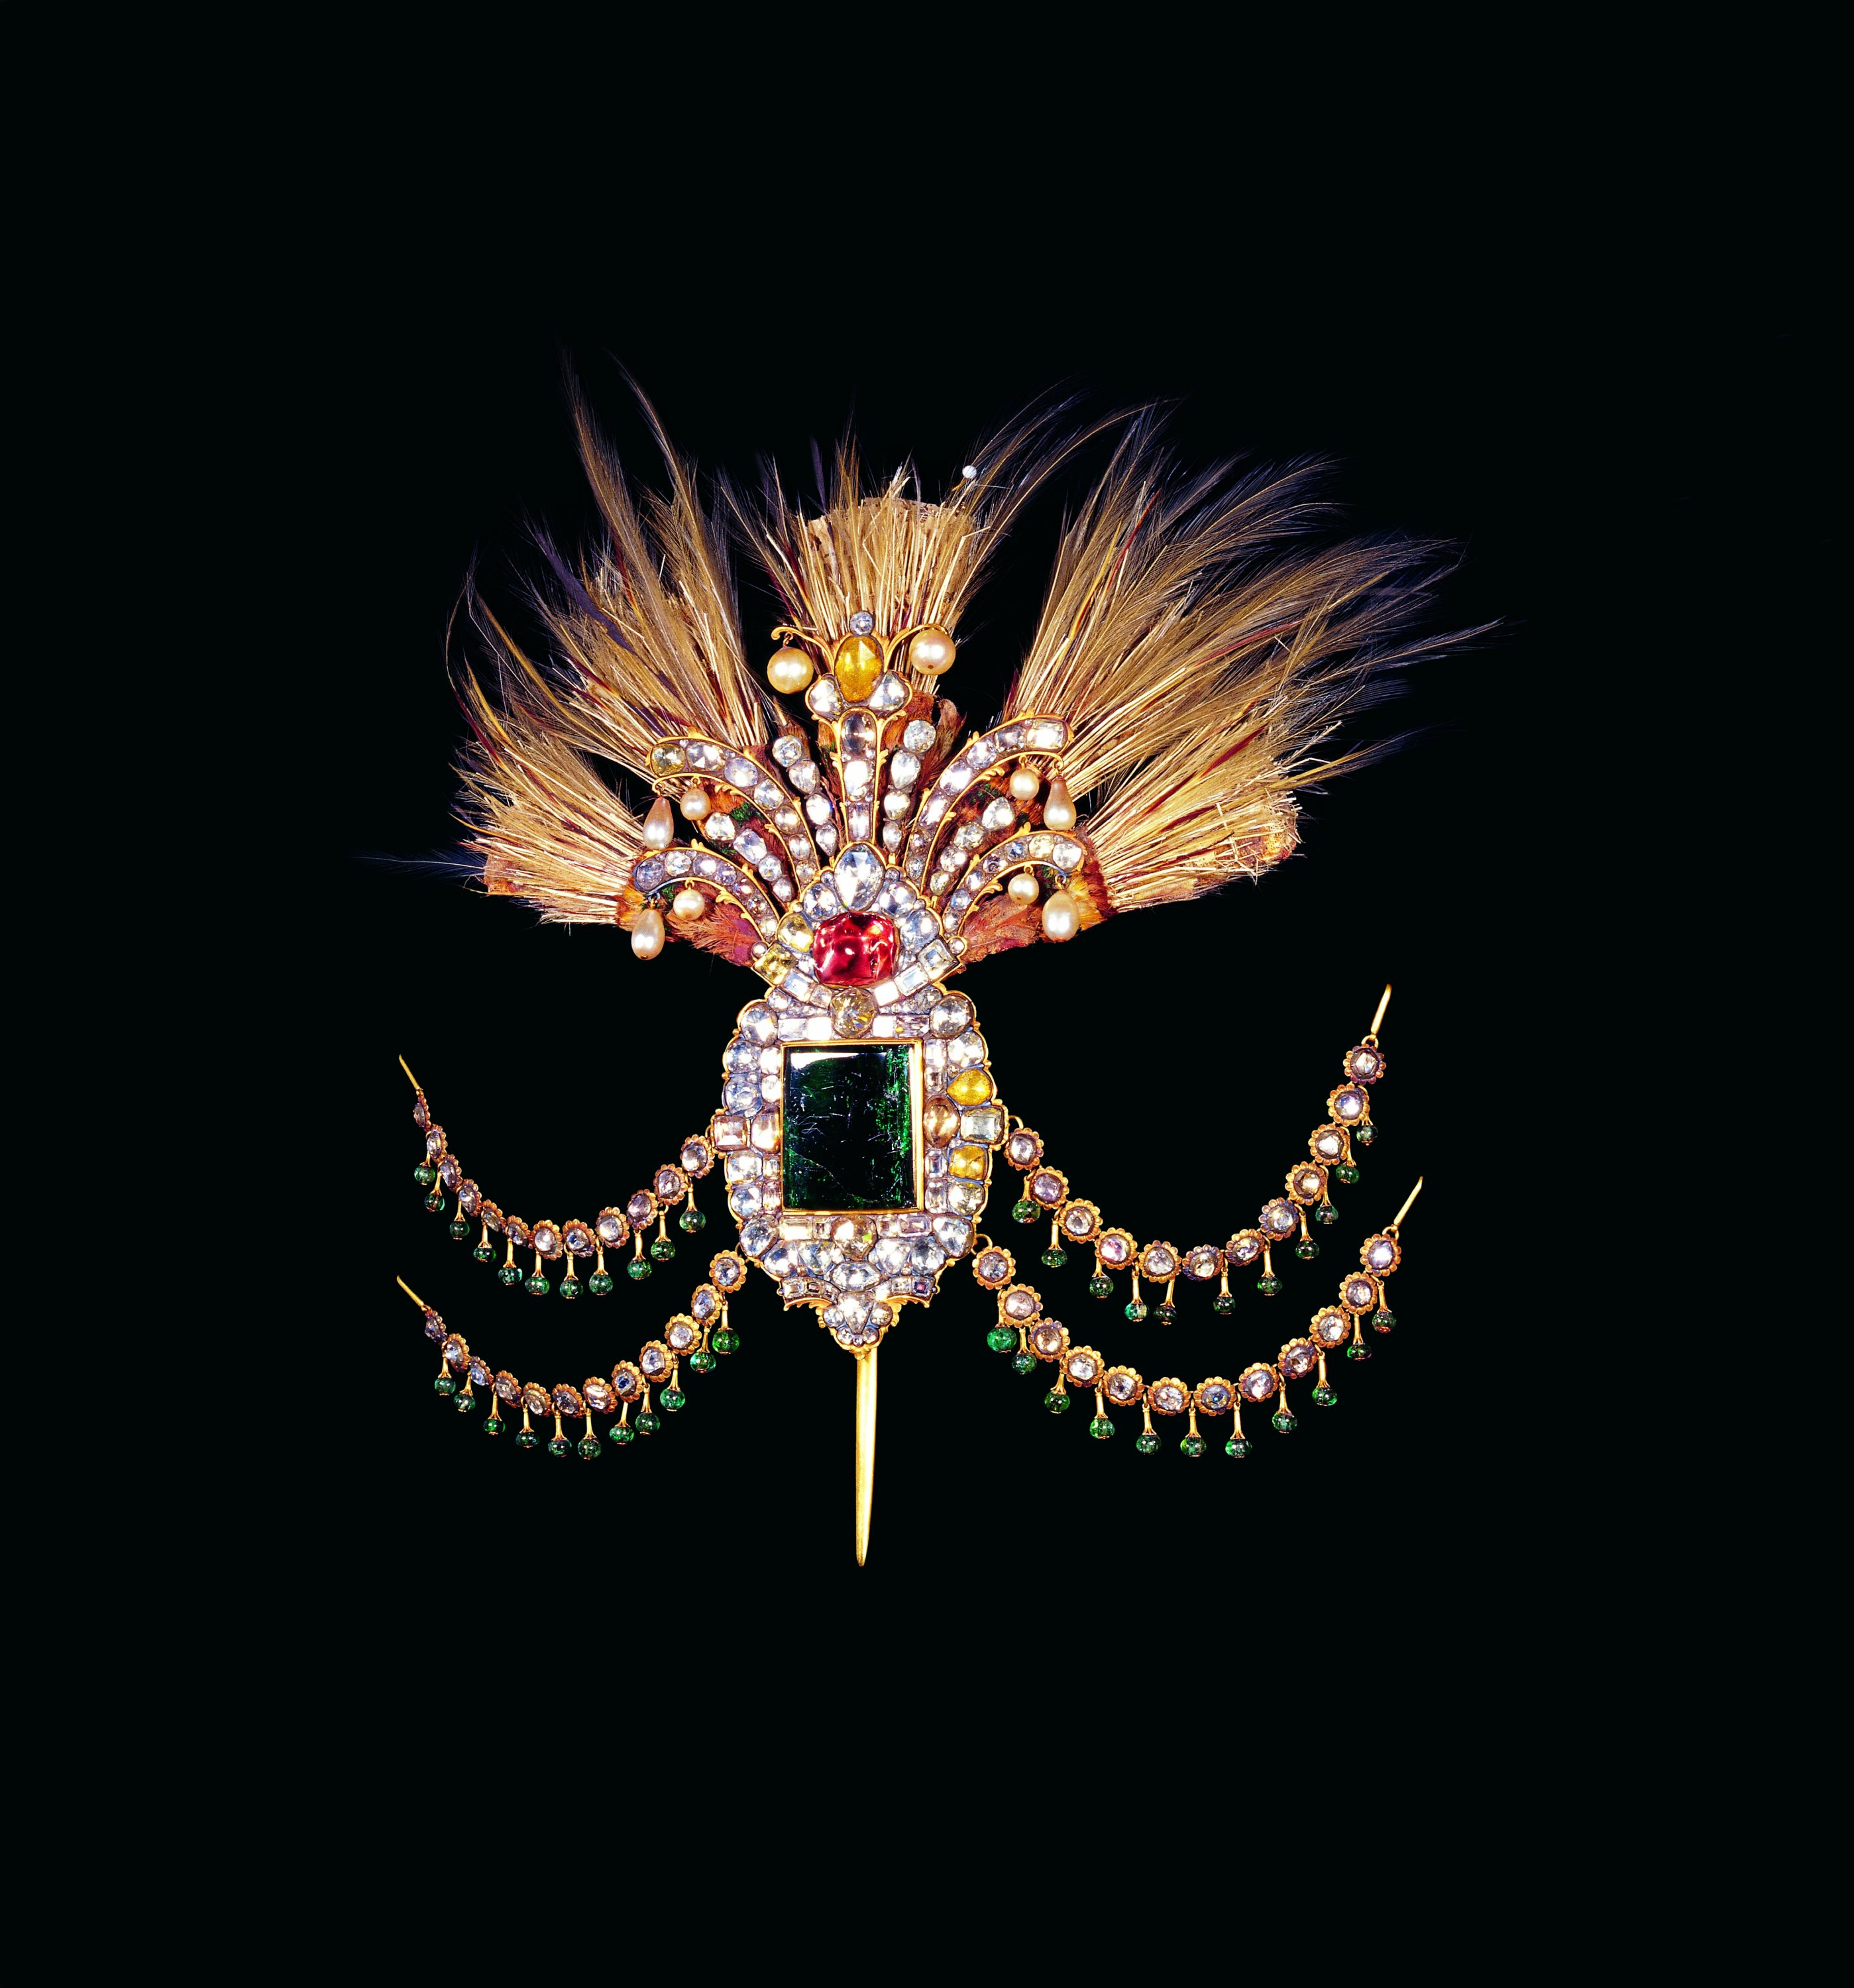 Aigrette, 18th century, gold, emerald, diamond, ruby, pearl, feather, 19.5 by 13.4 centimeters, selected from Topkapı Palace Museum, Istanbul, Turkey. (Courtesy of SSM)